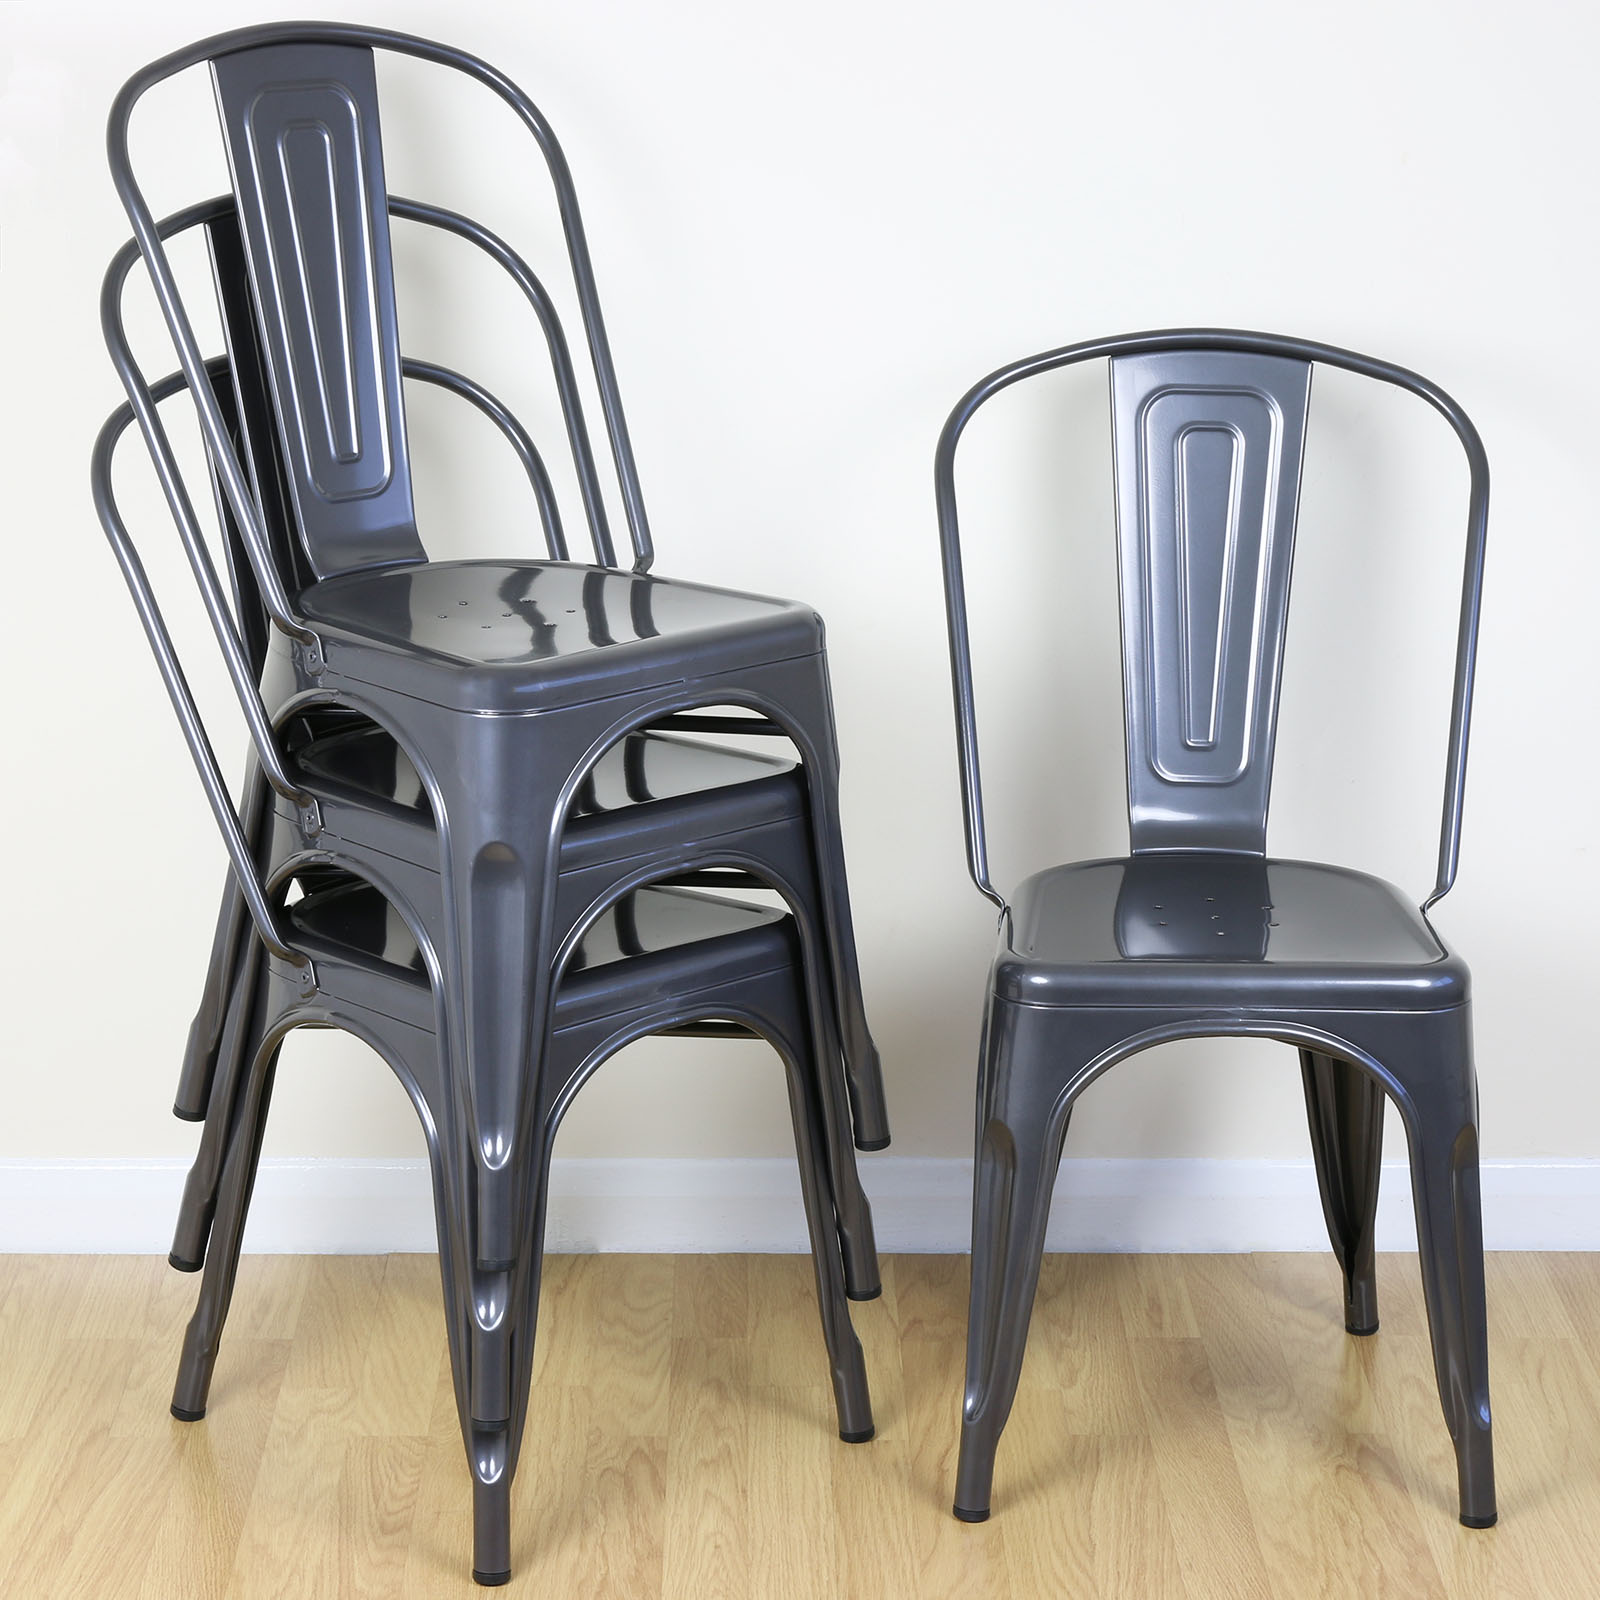 Metal Kitchen Chairs: Set Of 4 Gunmetal Metal Industrial Dining Chair Kitchen